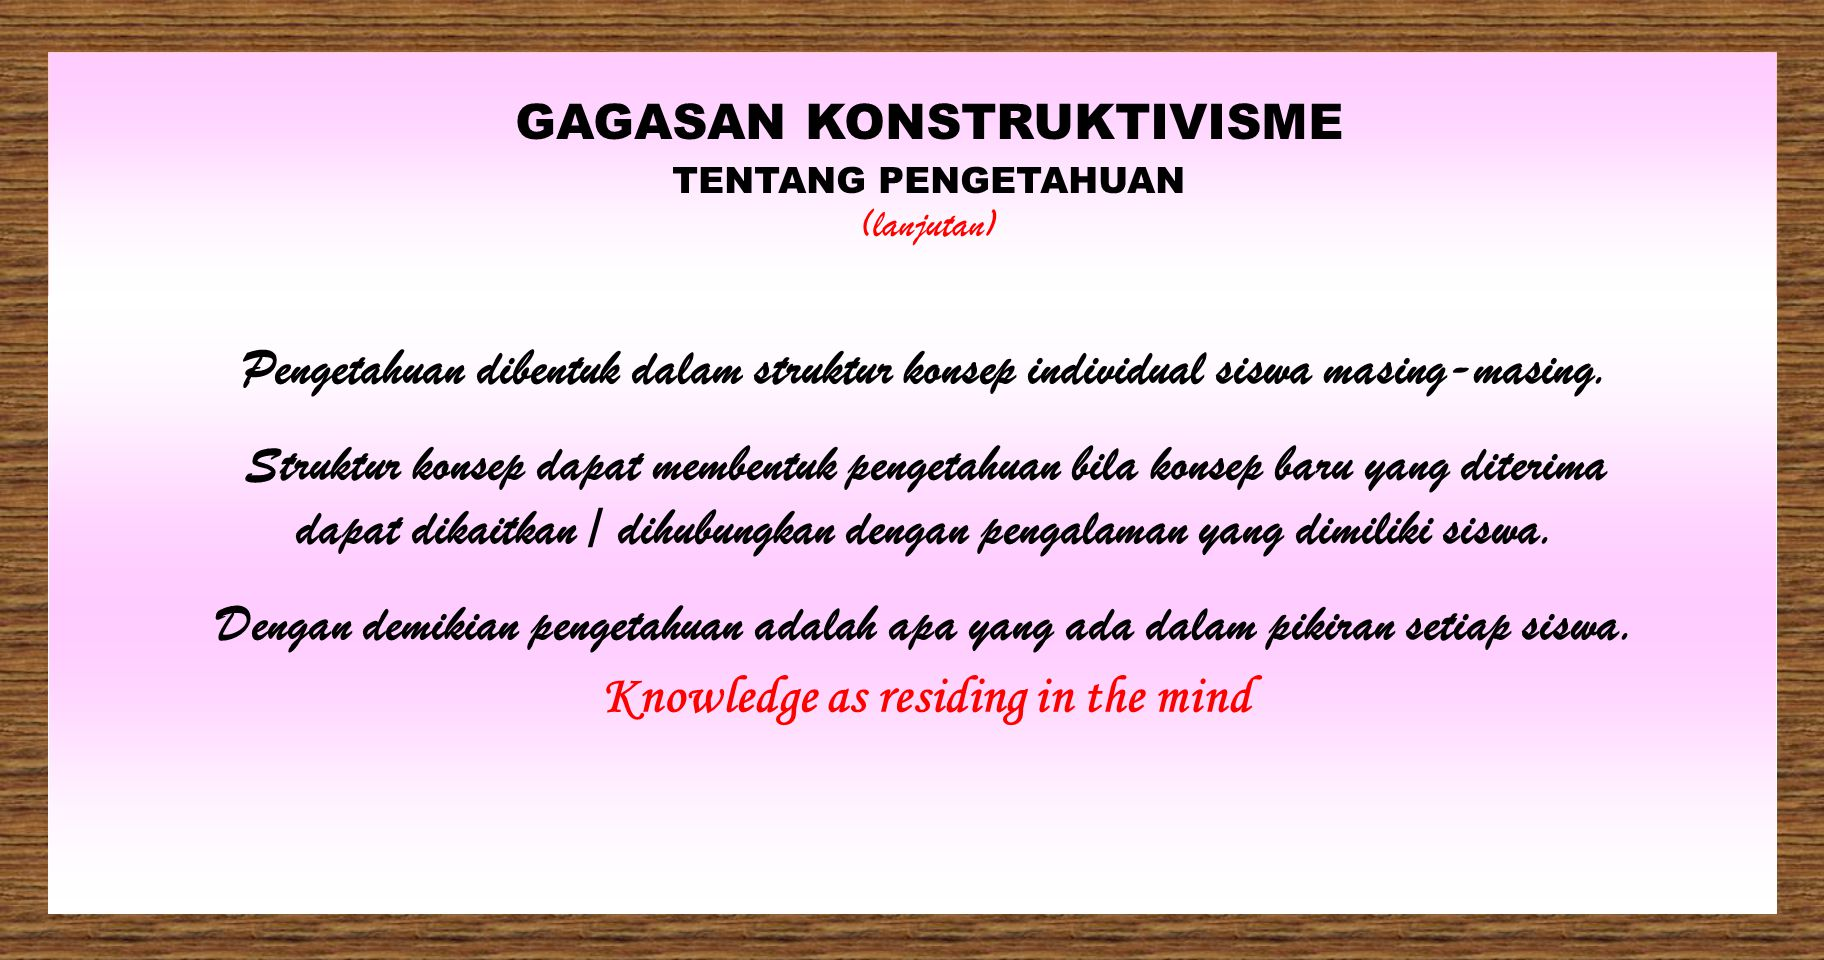 Knowledge as residing in the mind